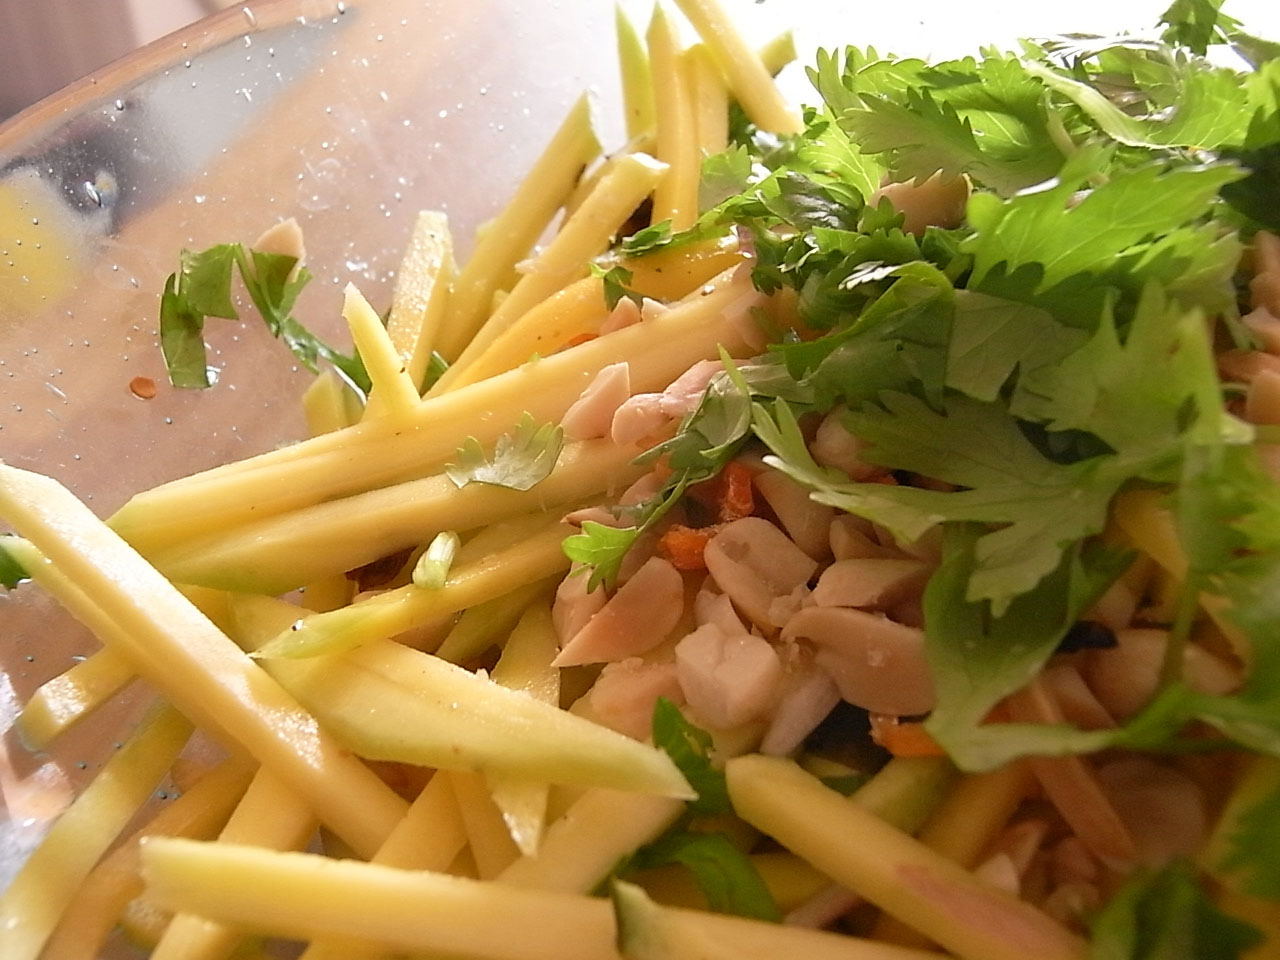 Samurai Viking Cuisine: Thai Green Mango Salad